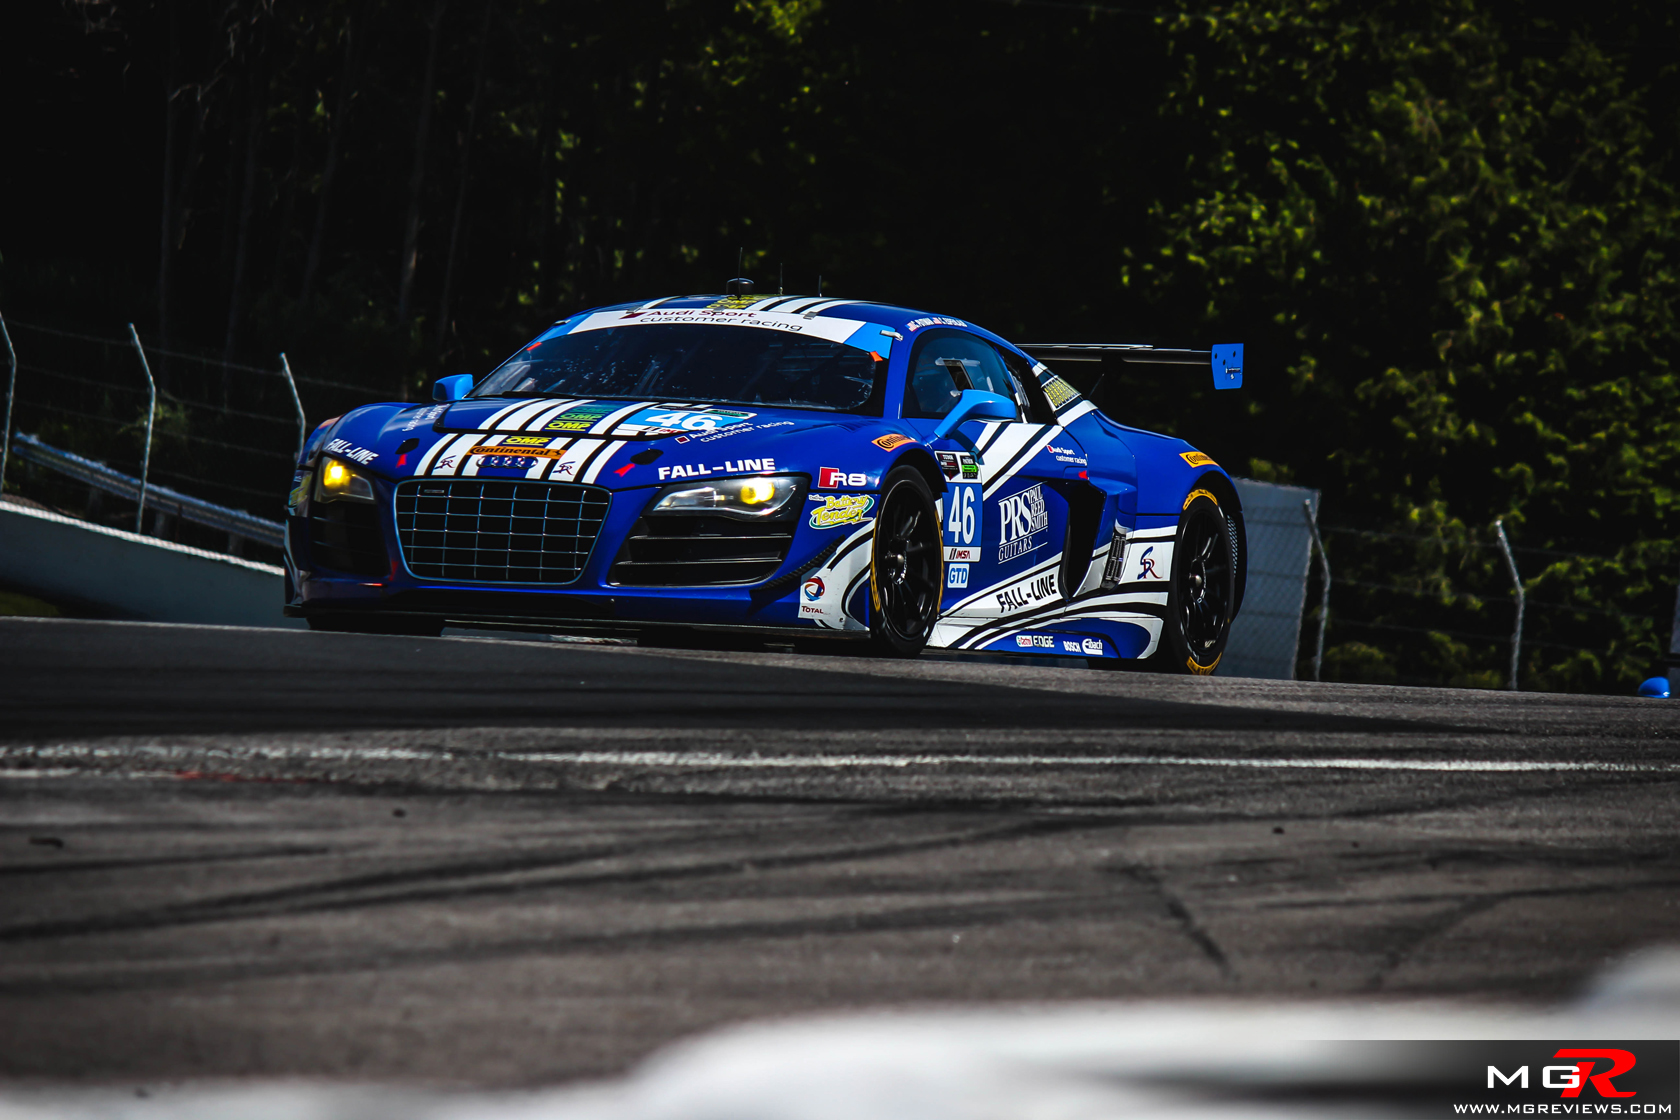 photos 2014 imsa tudor united sports car series part 1 \u2013 practice2014 tudor united sports car series 1 copy